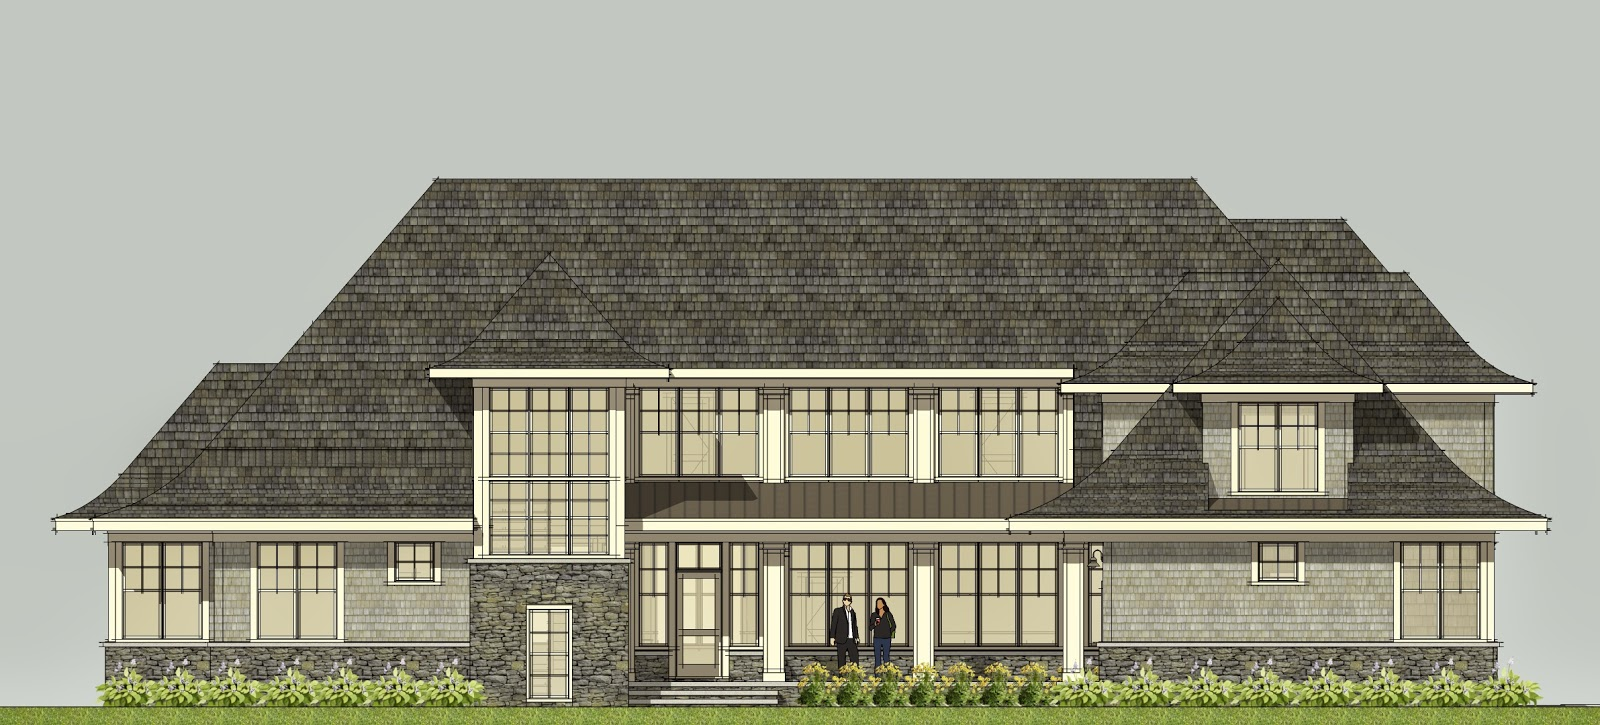 Simply Elegant Home Designs Blog: Home Plans from Big to Modest